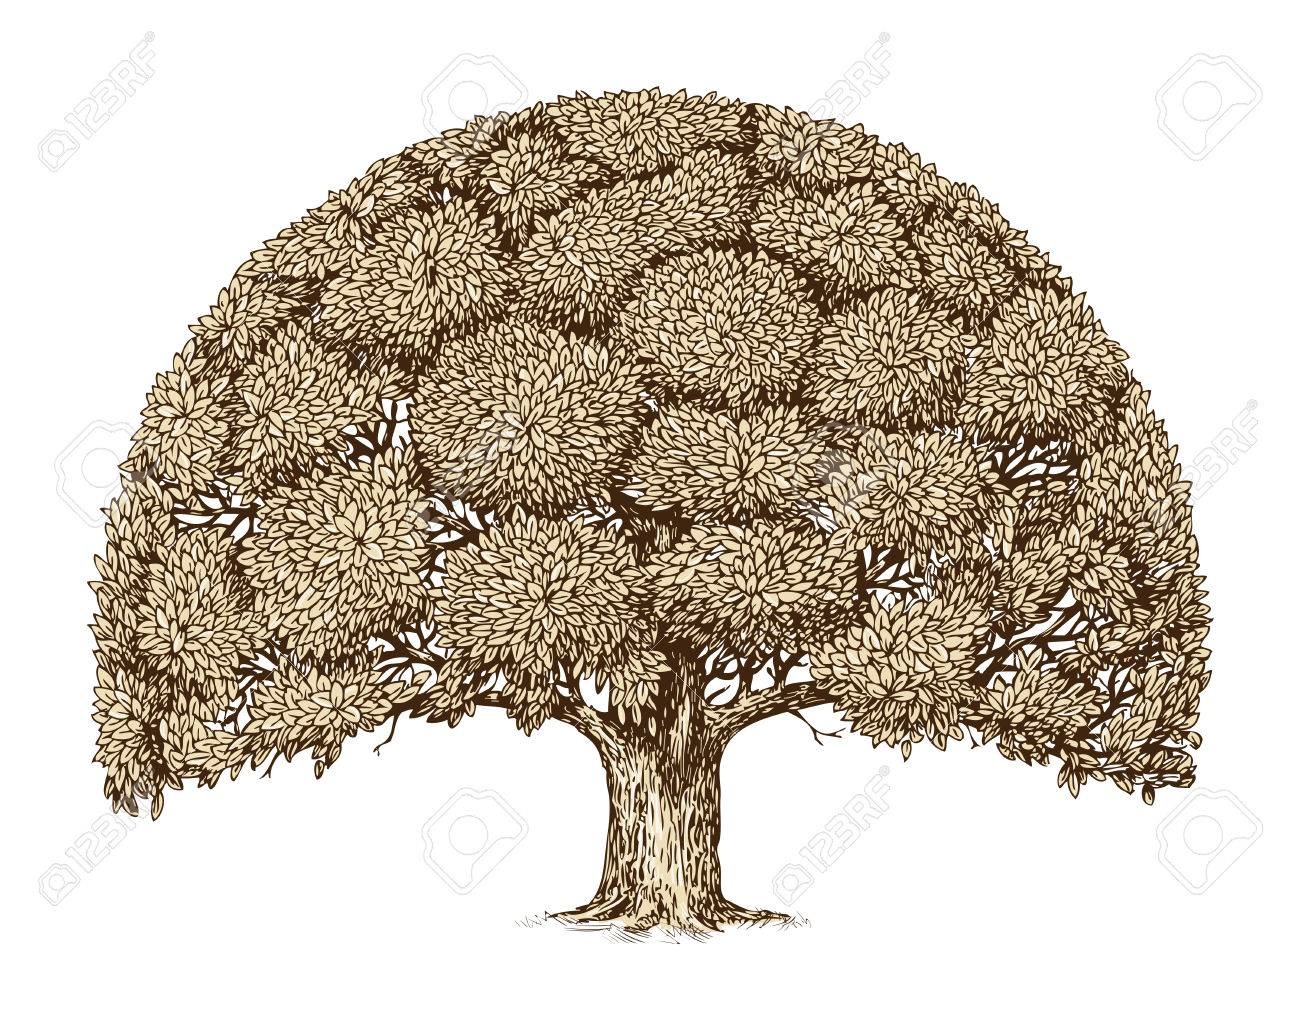 Vintage Tree Foliage Hand Drawn Sketch Old Oak Nature Royalty Free Cliparts Vectors And Stock Illustration Image 57887833